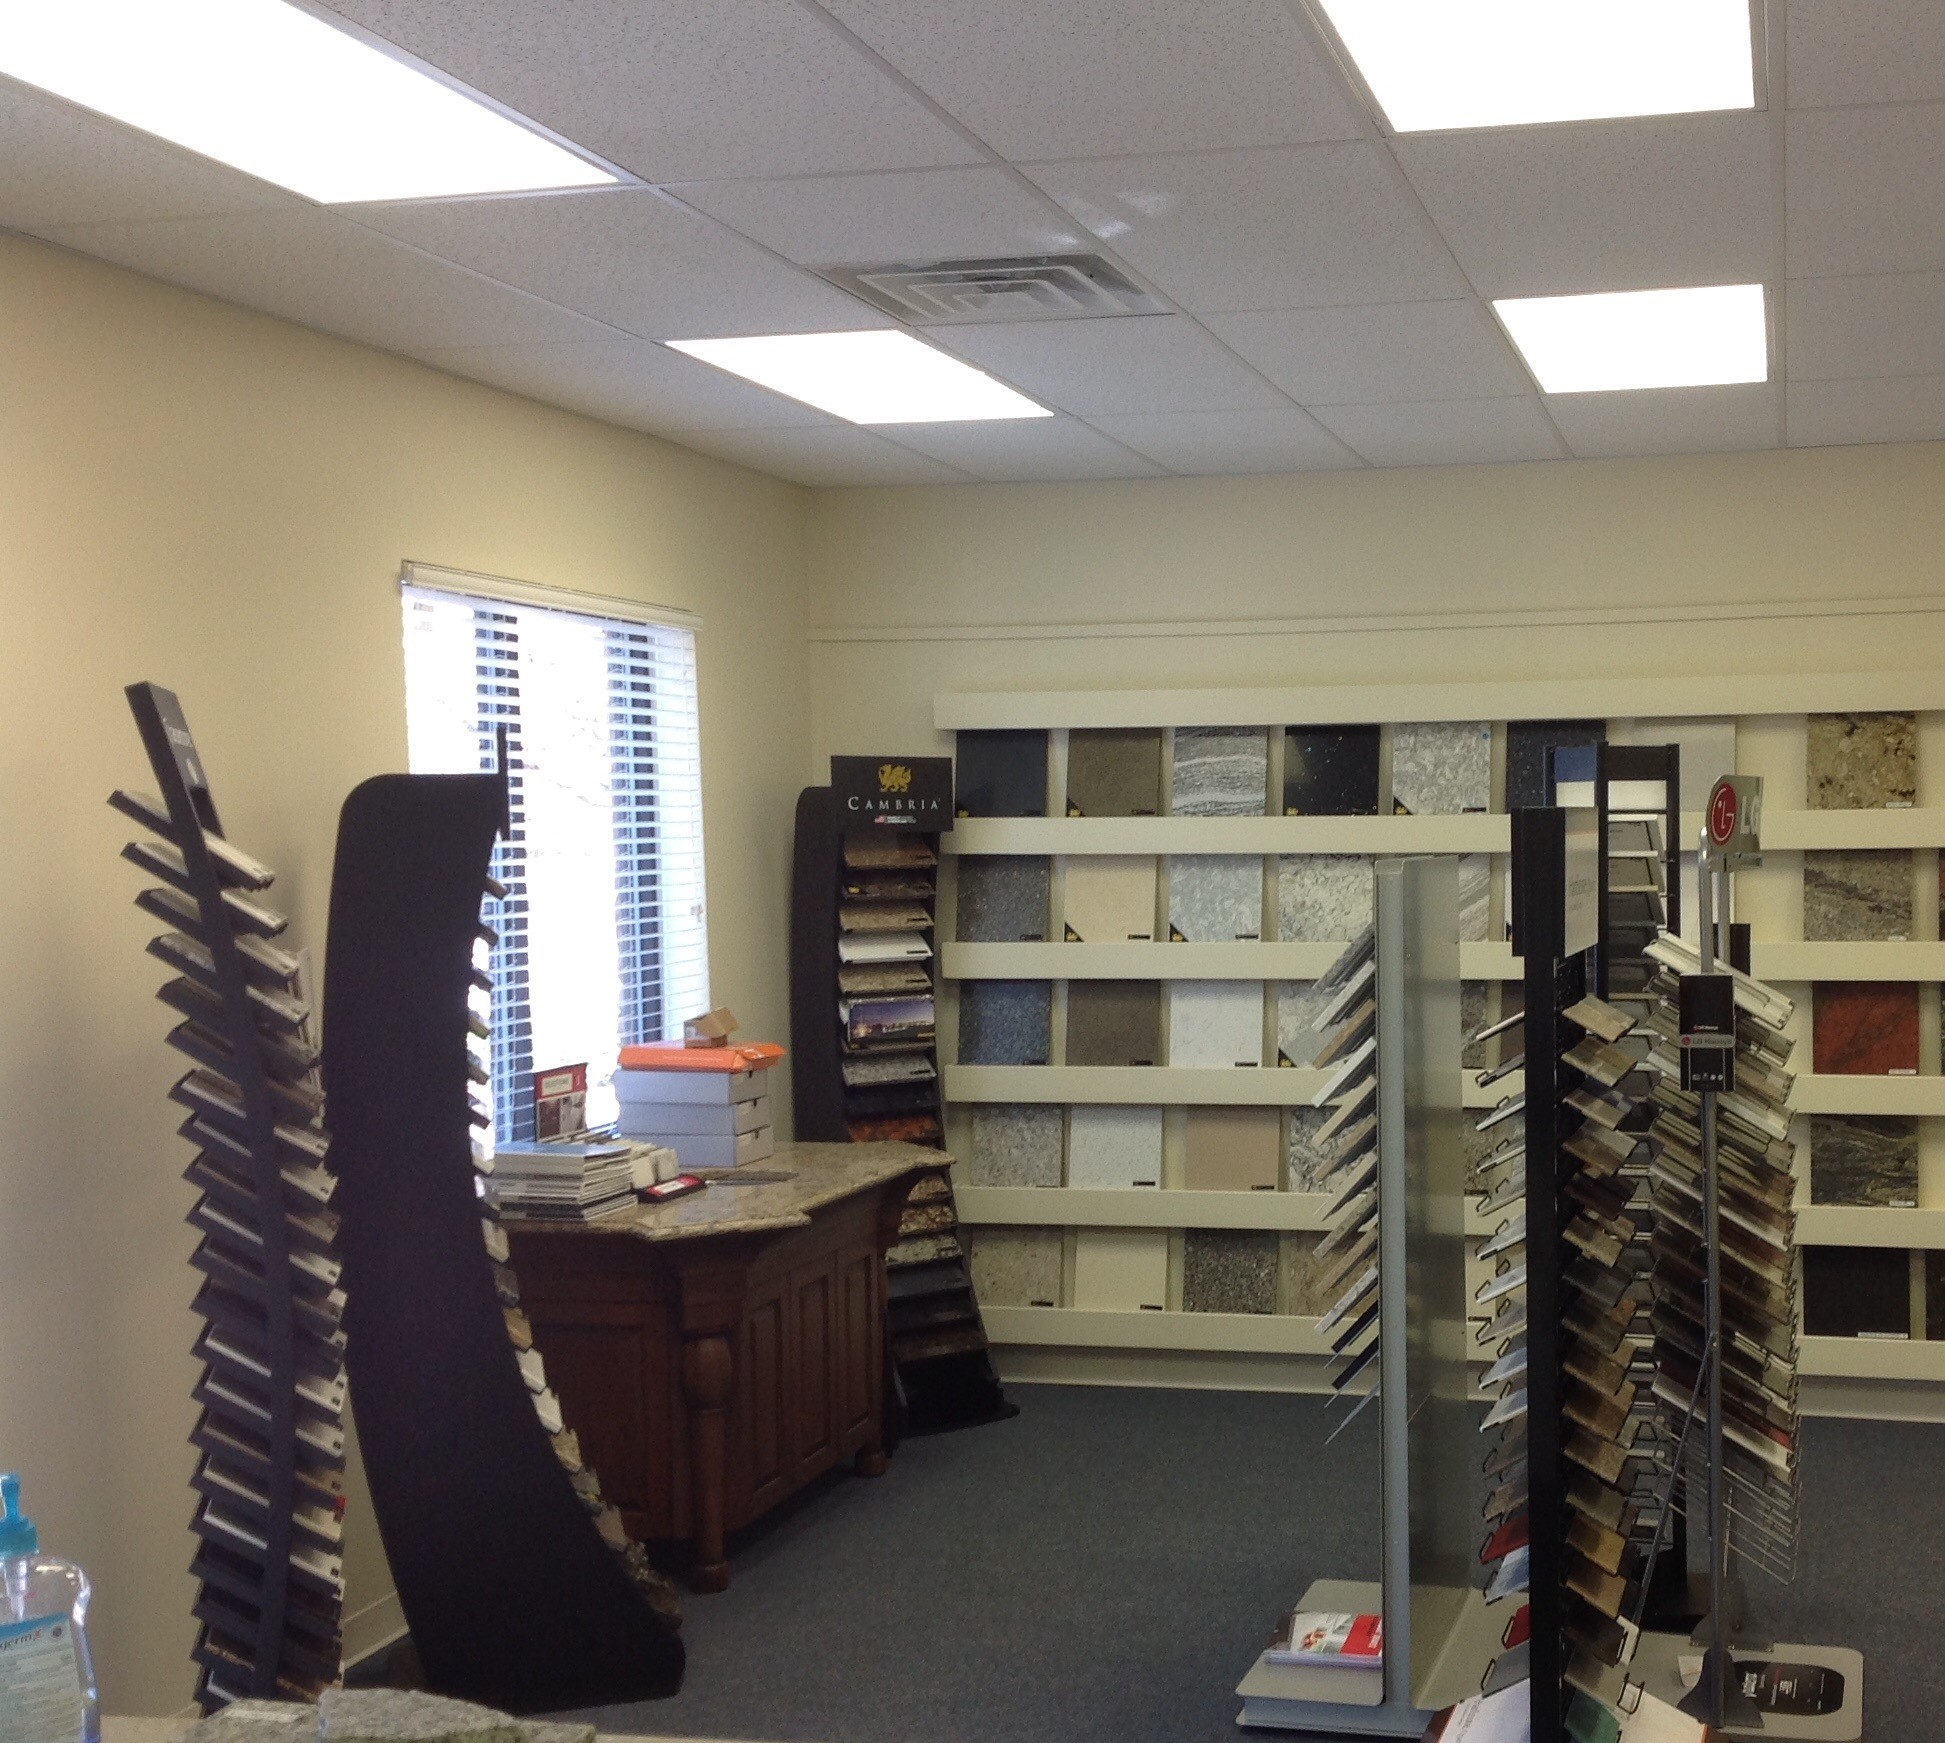 Cabinet Store in NC Wilmington 28405 Sellers Tile Co 2104 Capital Dr  (910)241-0361